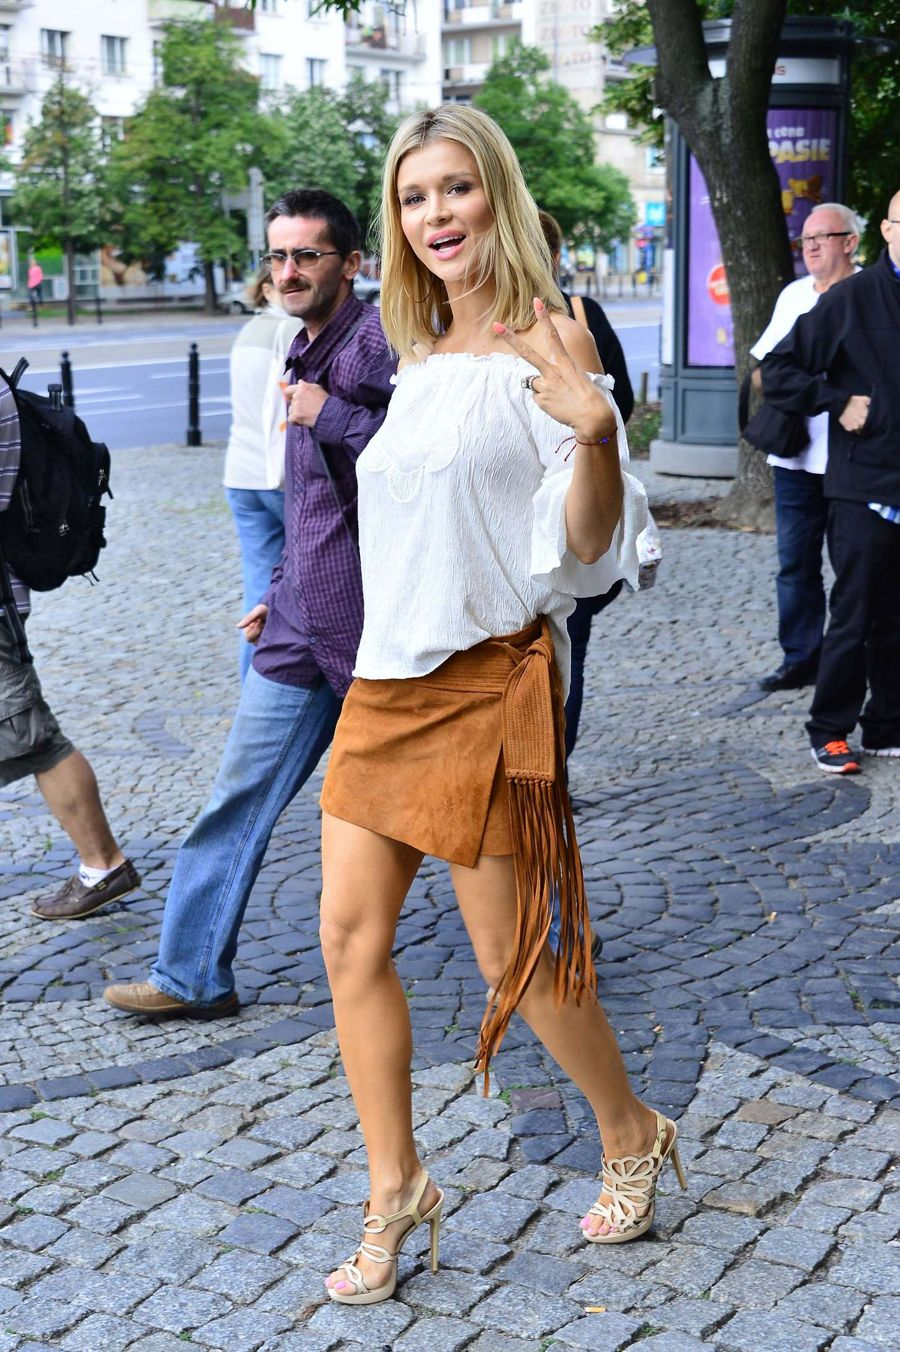 Joanna Krupa - Leaving her Apartment in Warszawa